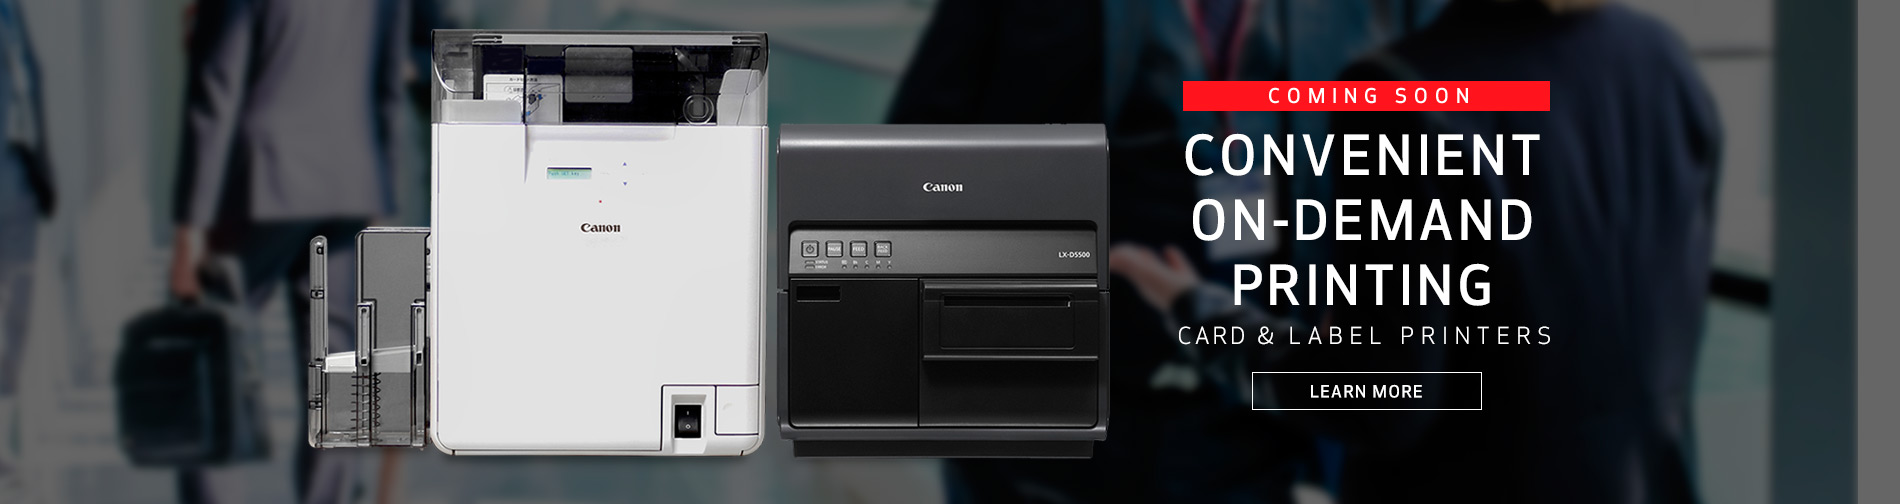 Convenient On-Demand Printing - Card & Label Printers